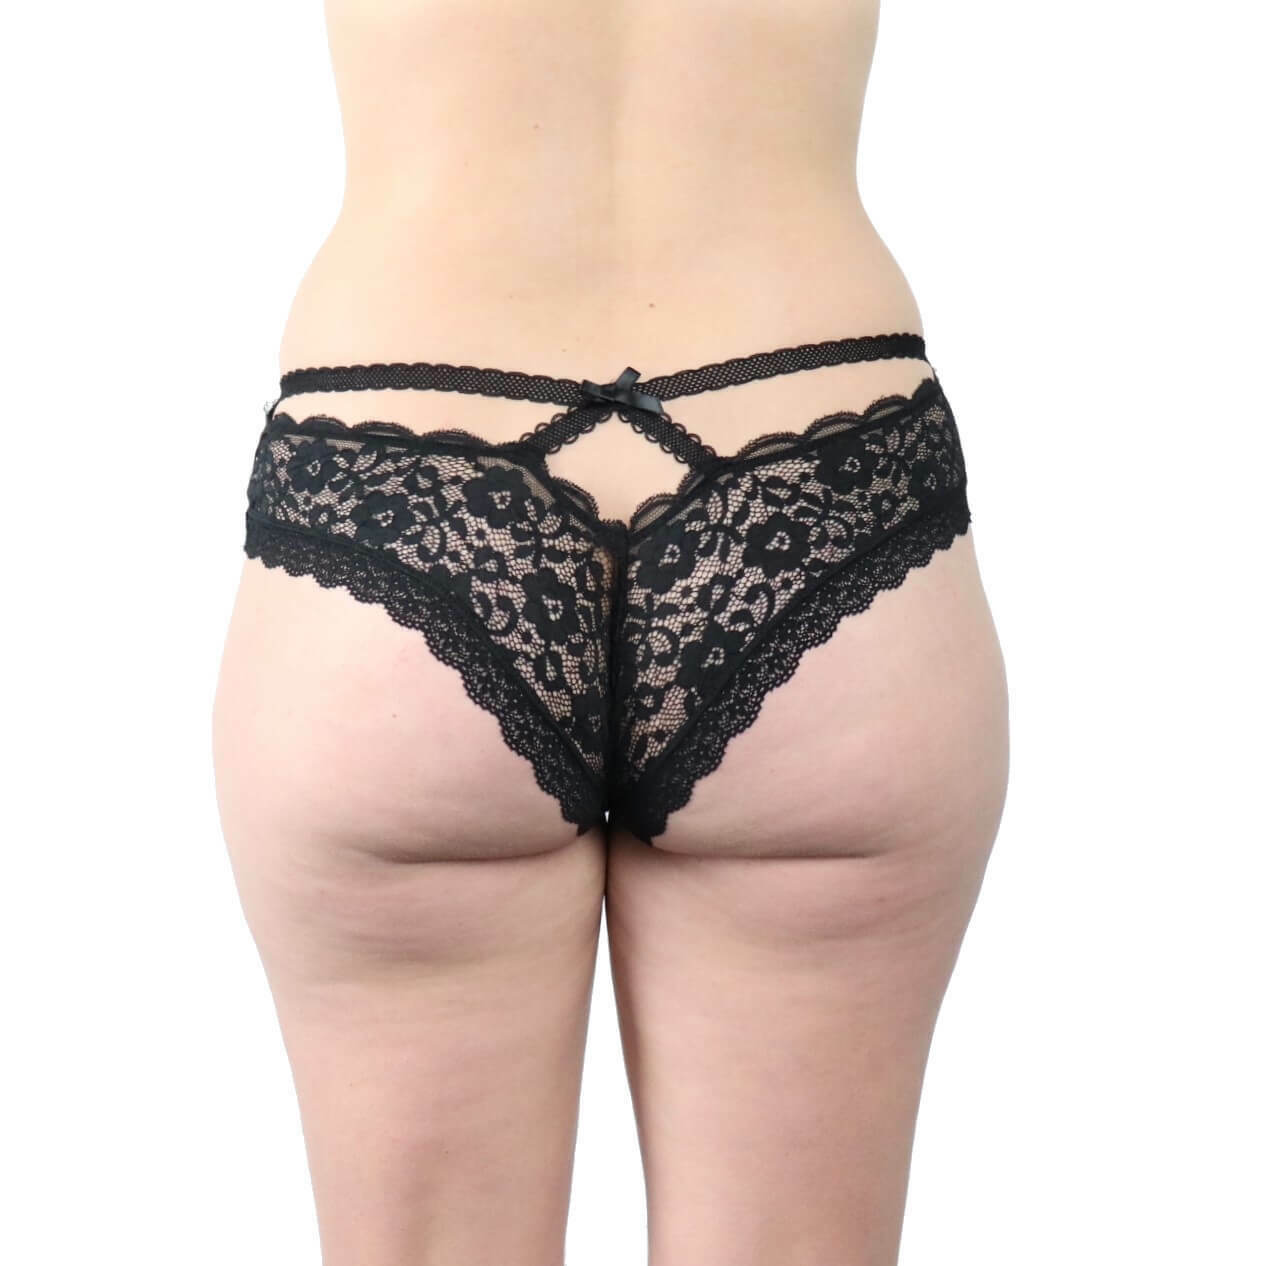 415f7515267 Details about Sexy Black Lace Strappy Elastic Underwear Panties Plus Size  8-18 Lingerie Ribbon